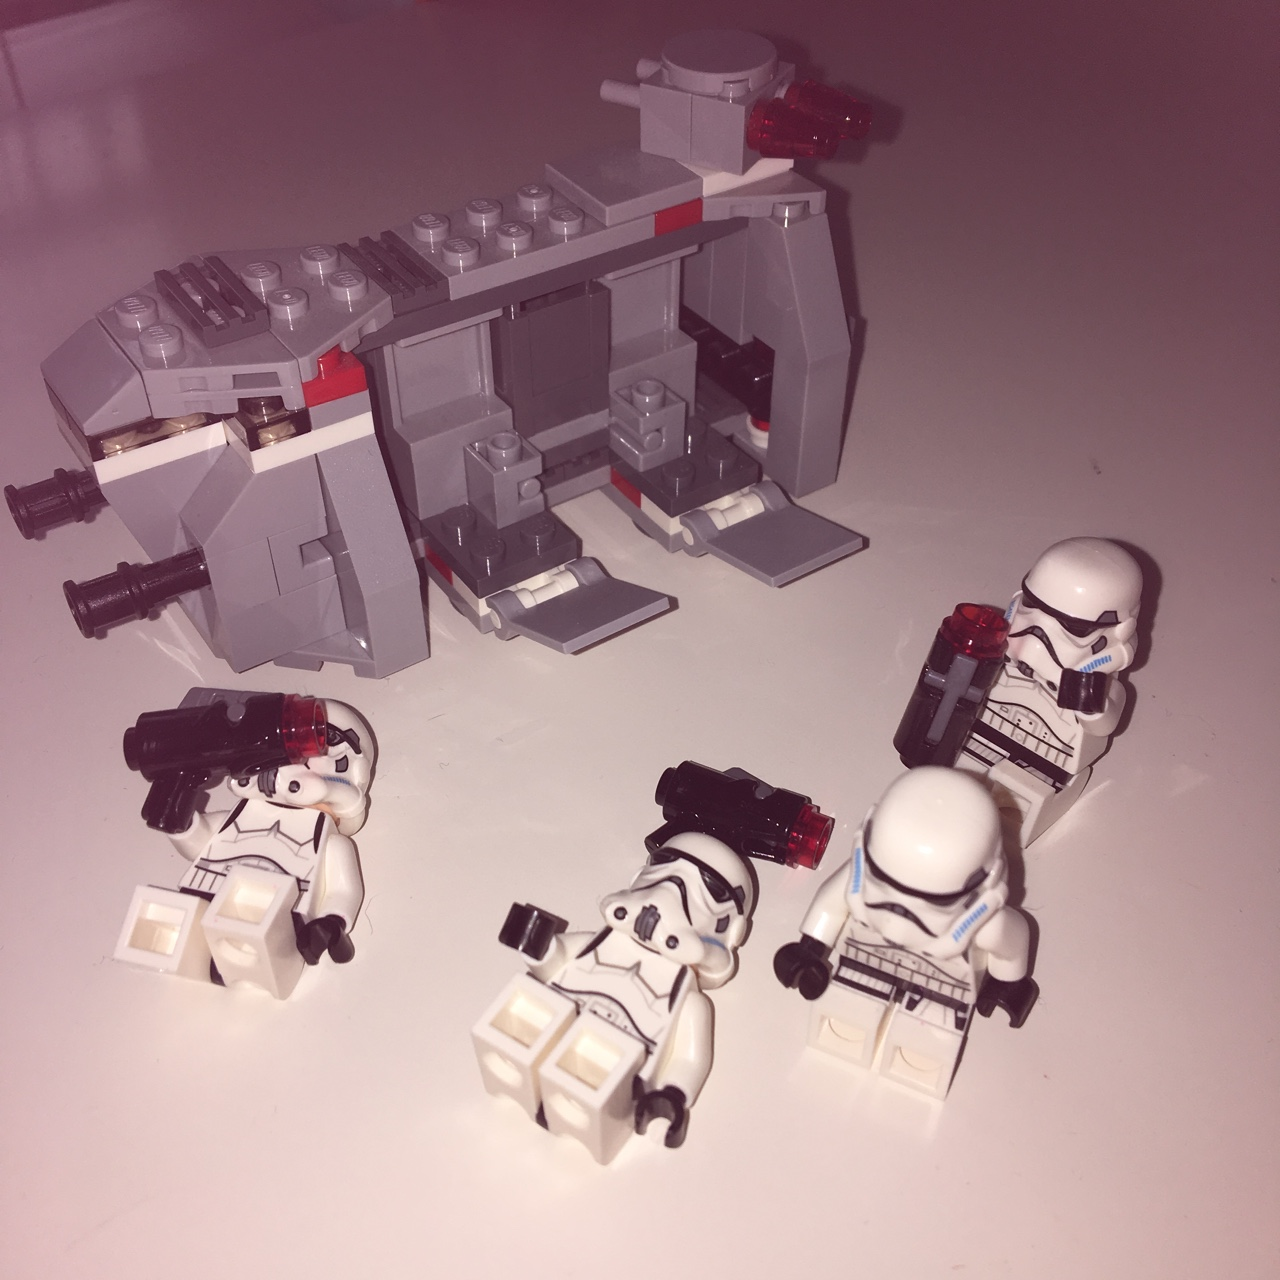 Star Wars Lego Set There Is 4 Stormtroopers And A Depop